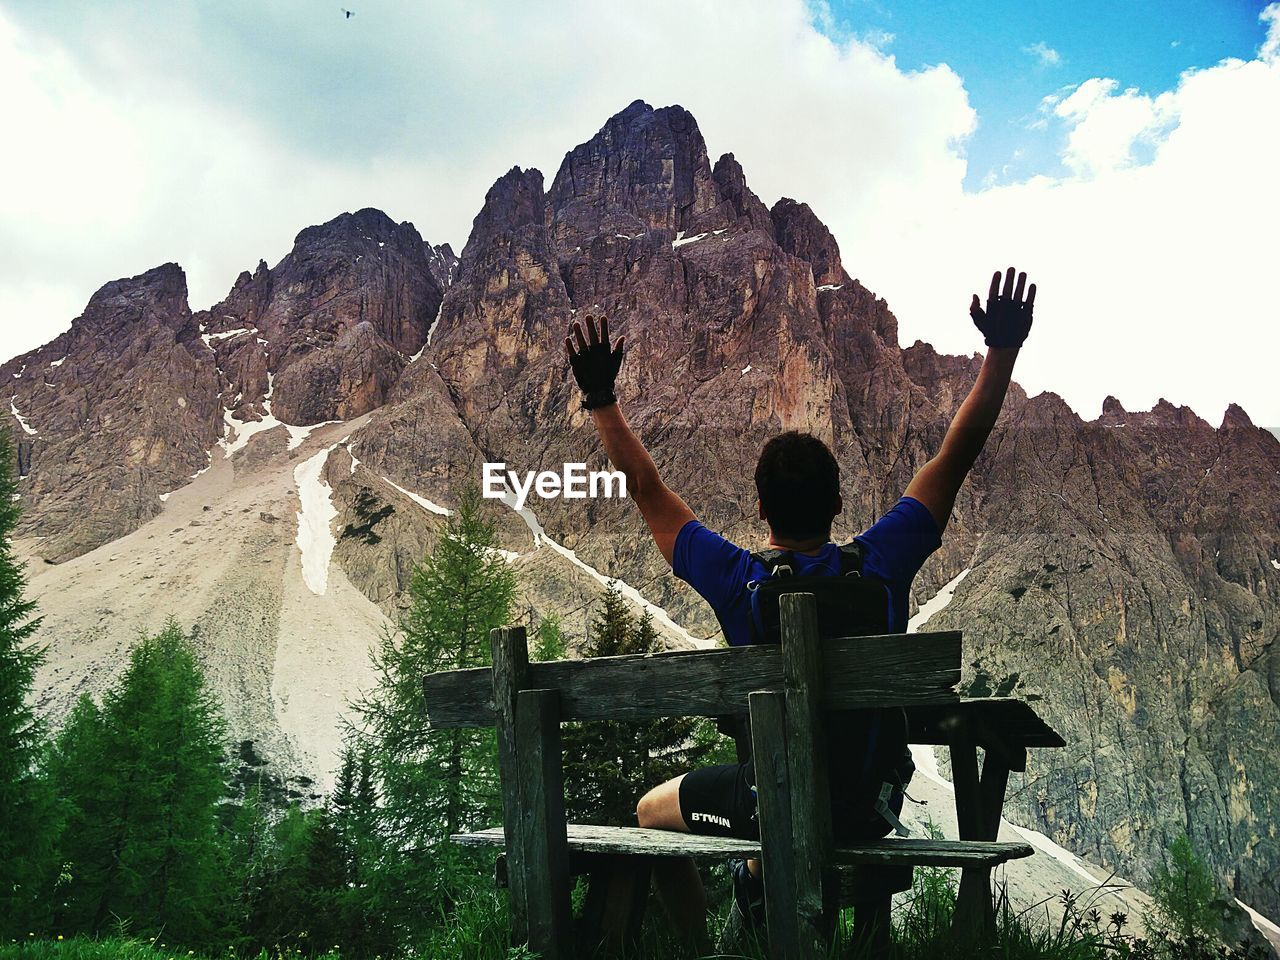 mountain, real people, leisure activity, beauty in nature, one person, sky, lifestyles, scenics - nature, sitting, rock, men, nature, mountain range, solid, rock - object, casual clothing, full length, vacations, day, formation, outdoors, human arm, looking at view